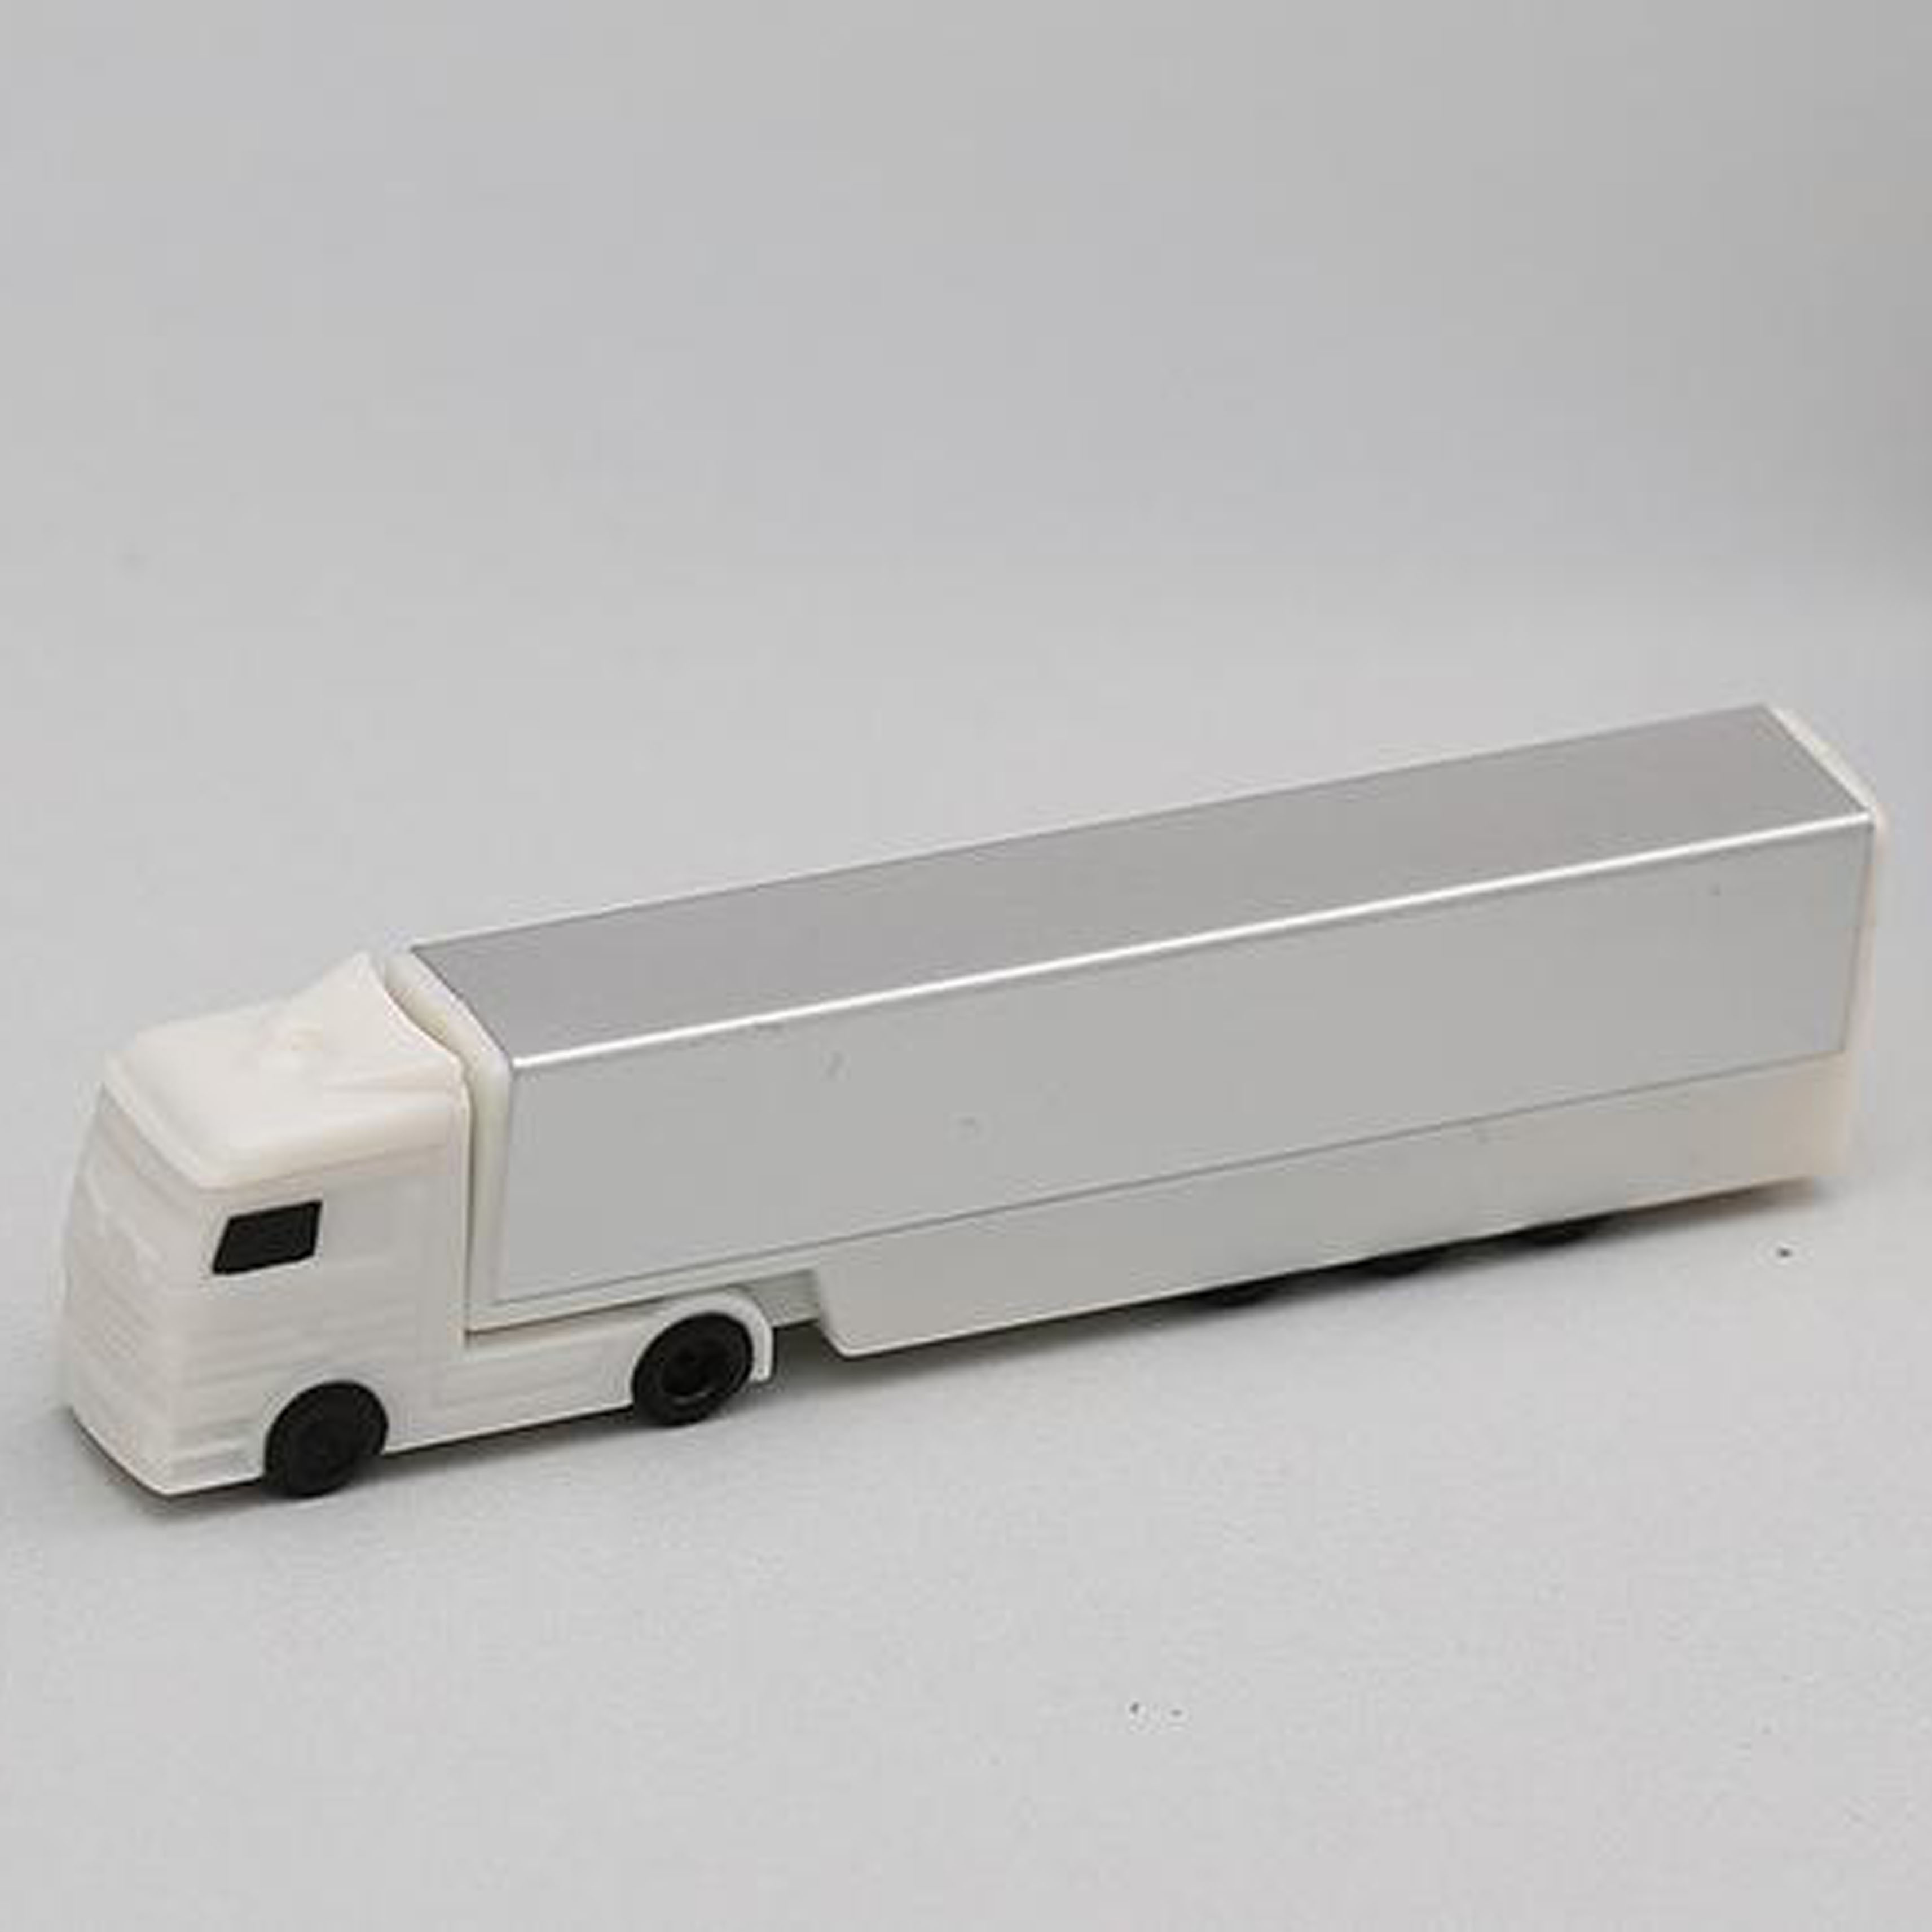 Plastic Truck Shape USB flash drive